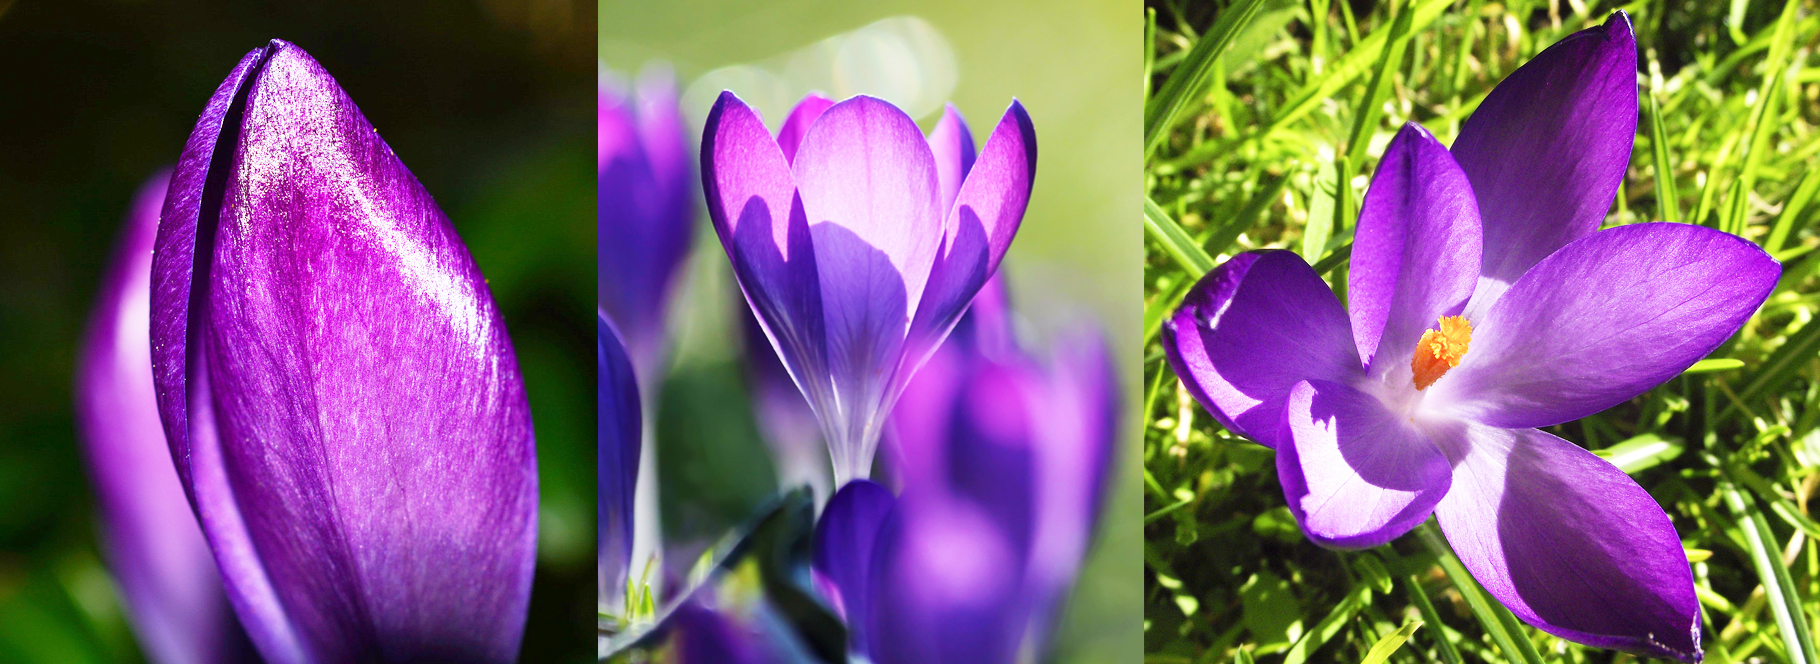 crocus-stages-of-blooming